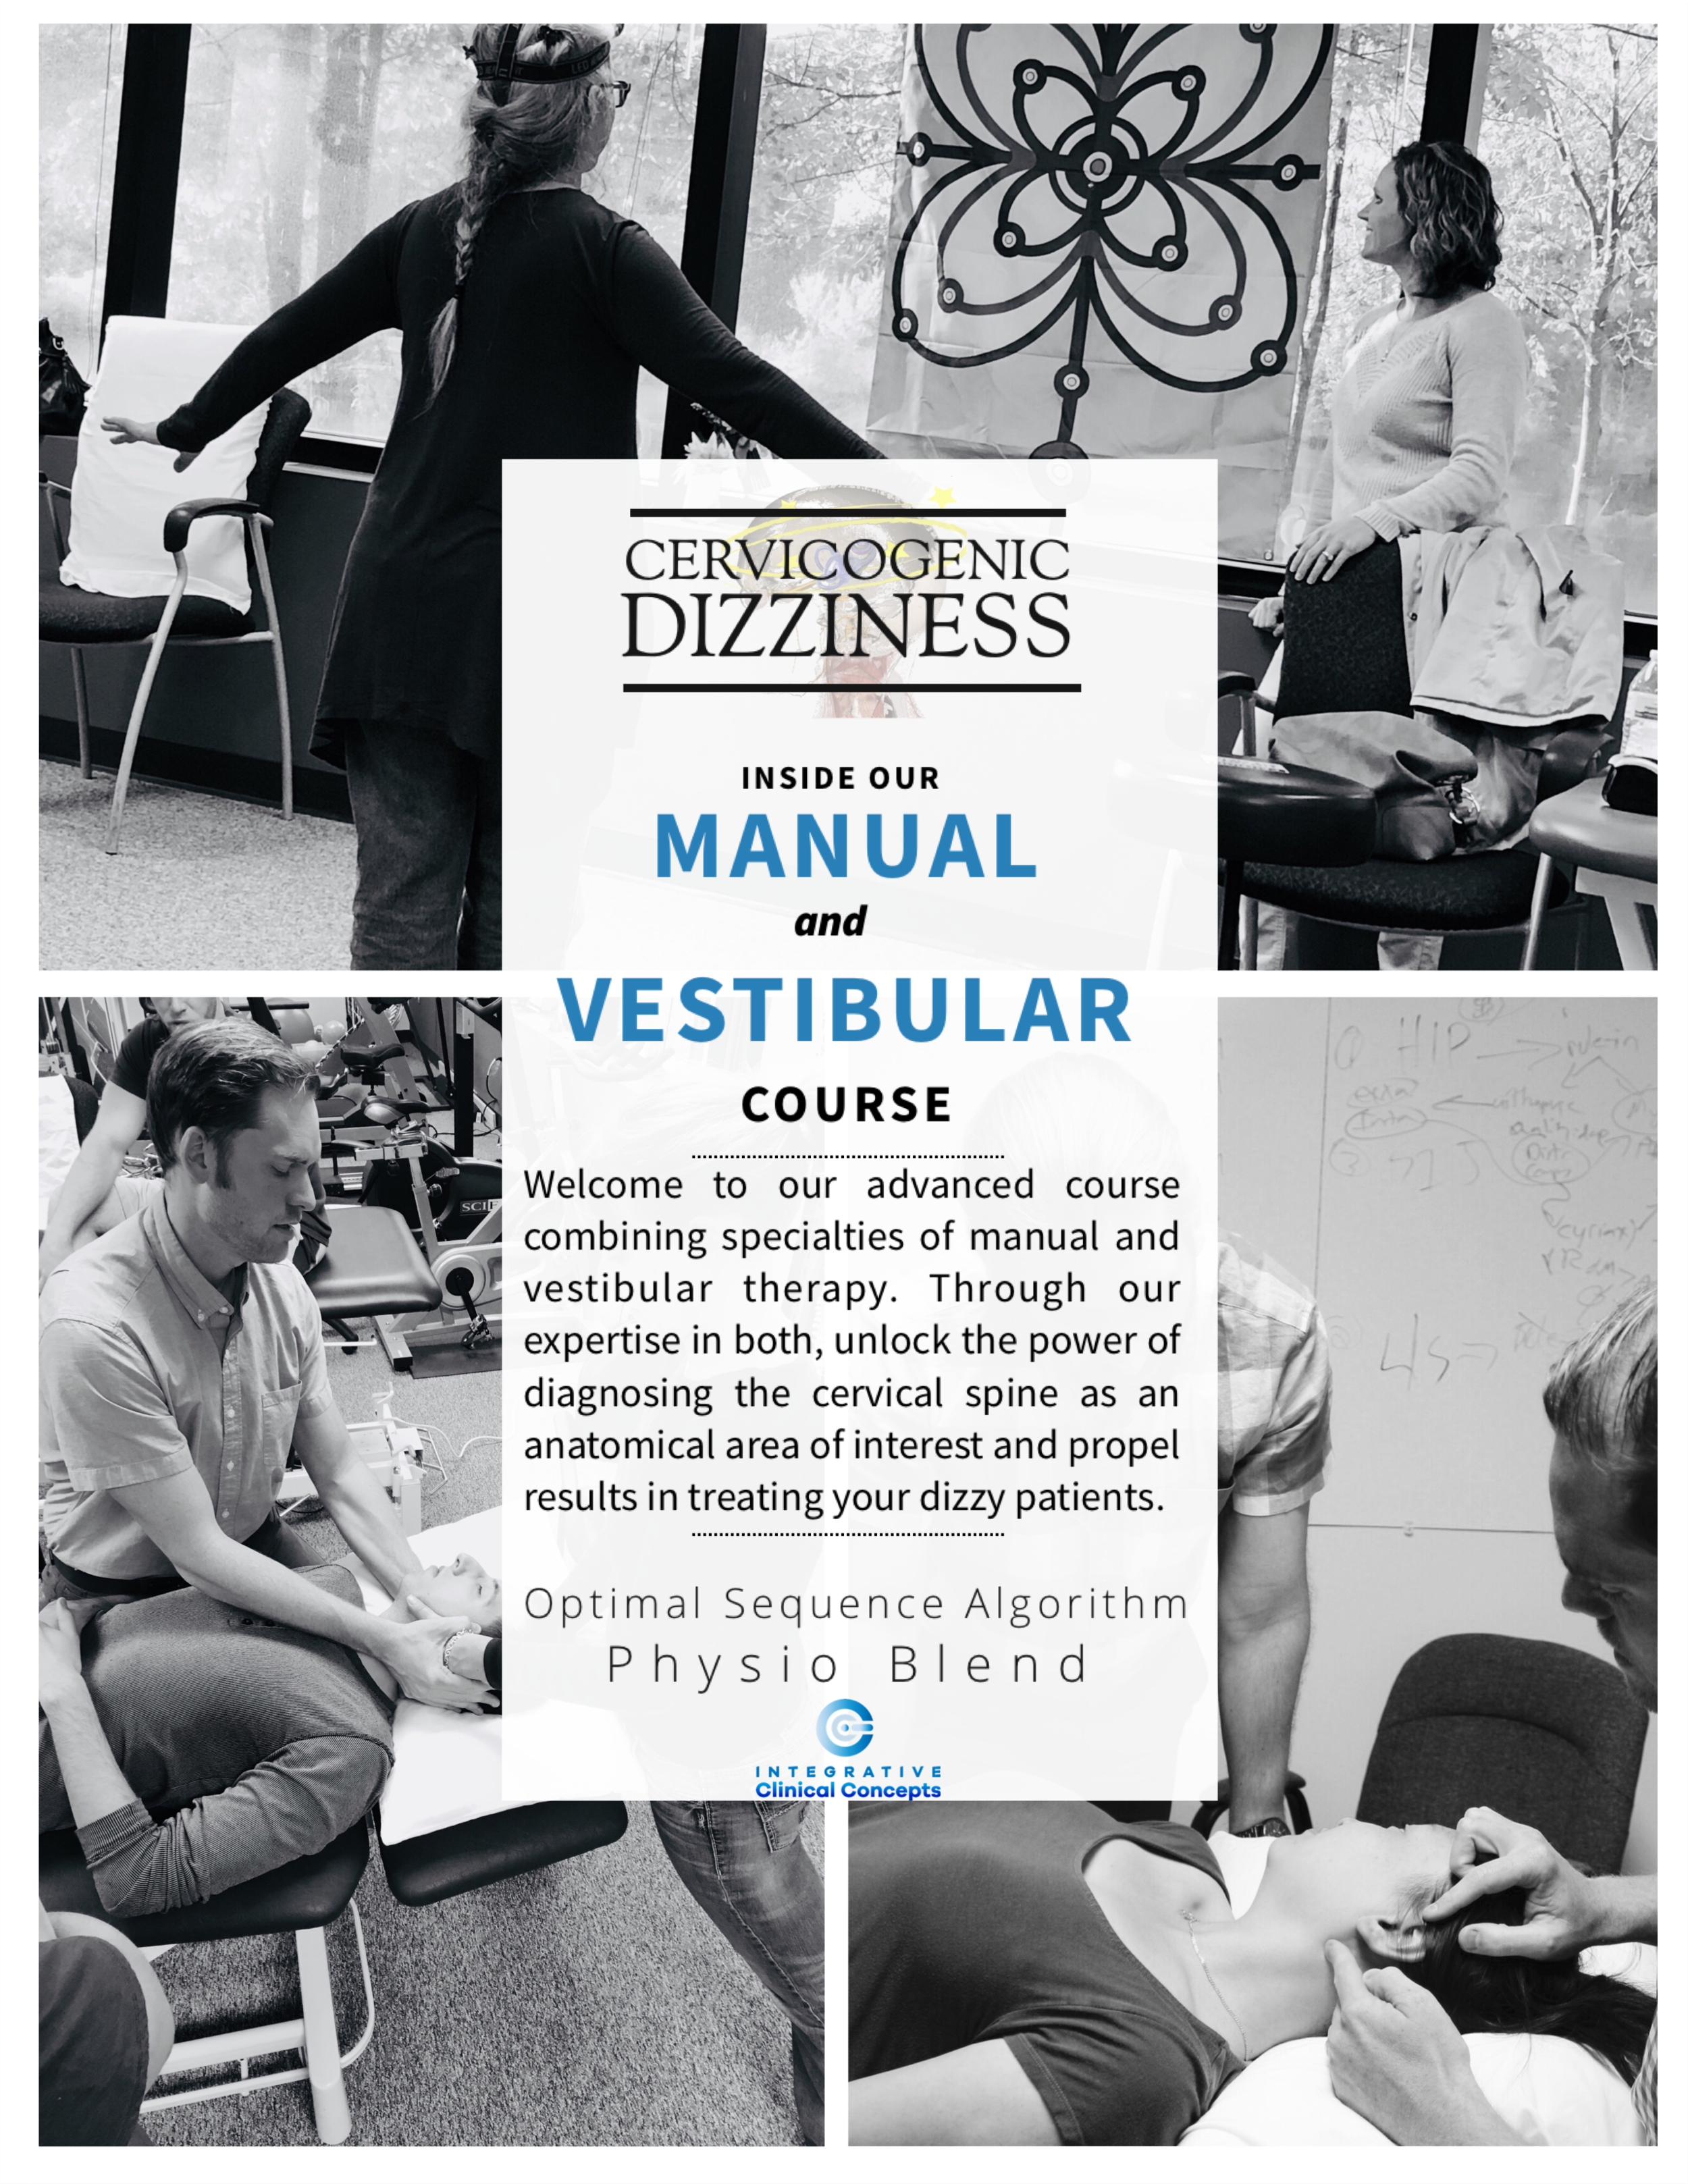 CERVICOGENIC DIZZINESS, CERVICAL VERTIGO, CERVICAL SPINE DIZZINESS, VERTIGO, PHYSICAL THERAPY, PHYSIOTHERAPY